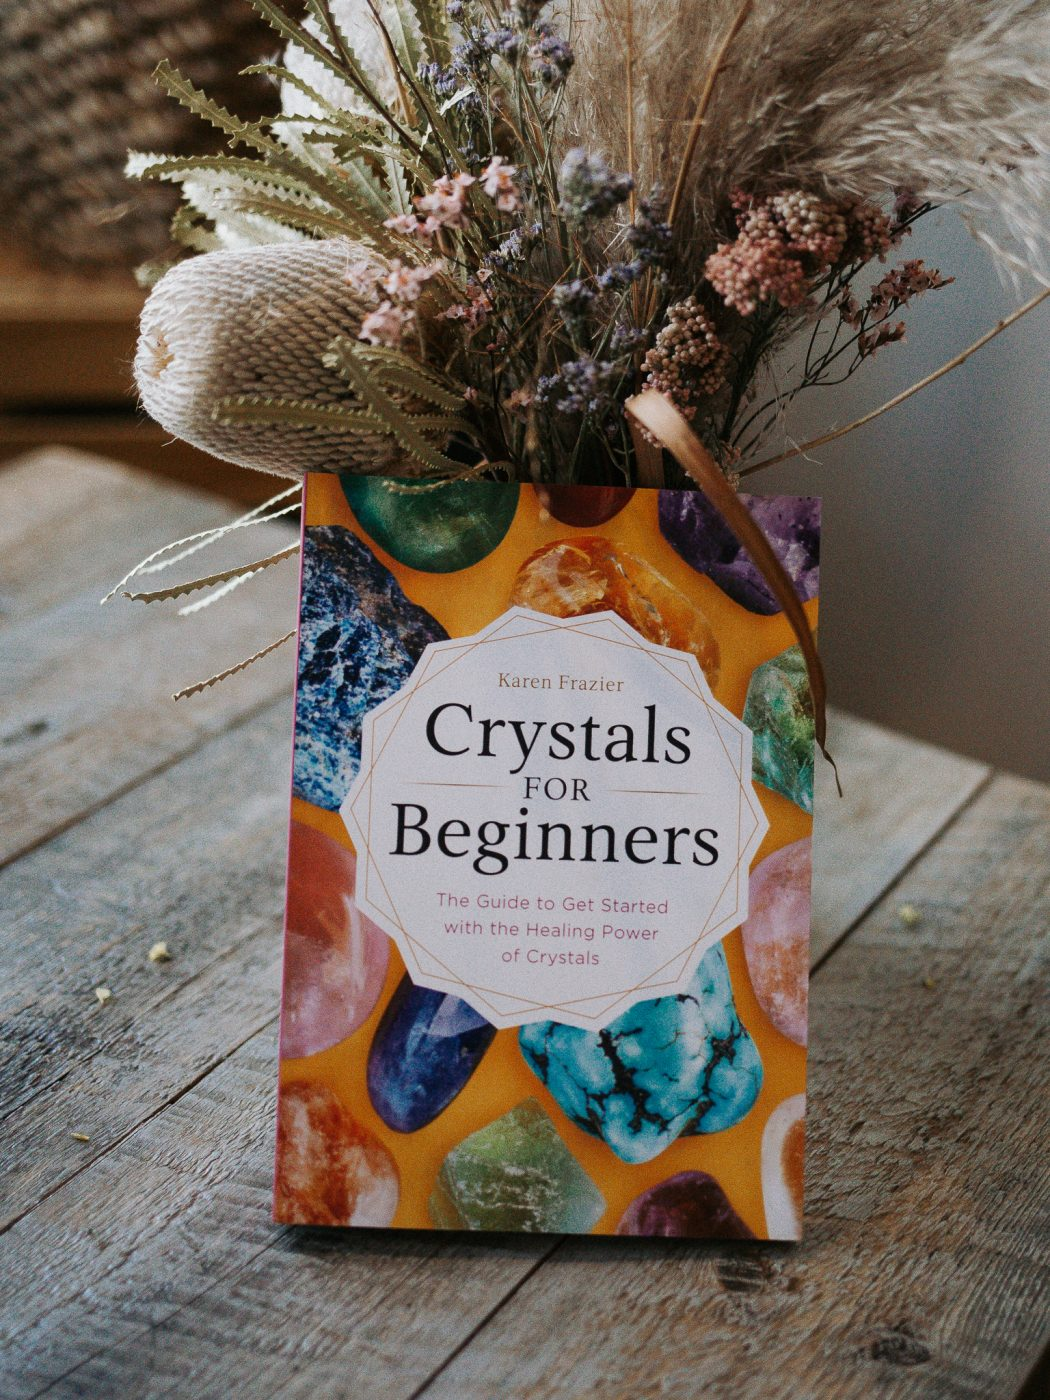 Crystals for Beginners by Karen Frazier